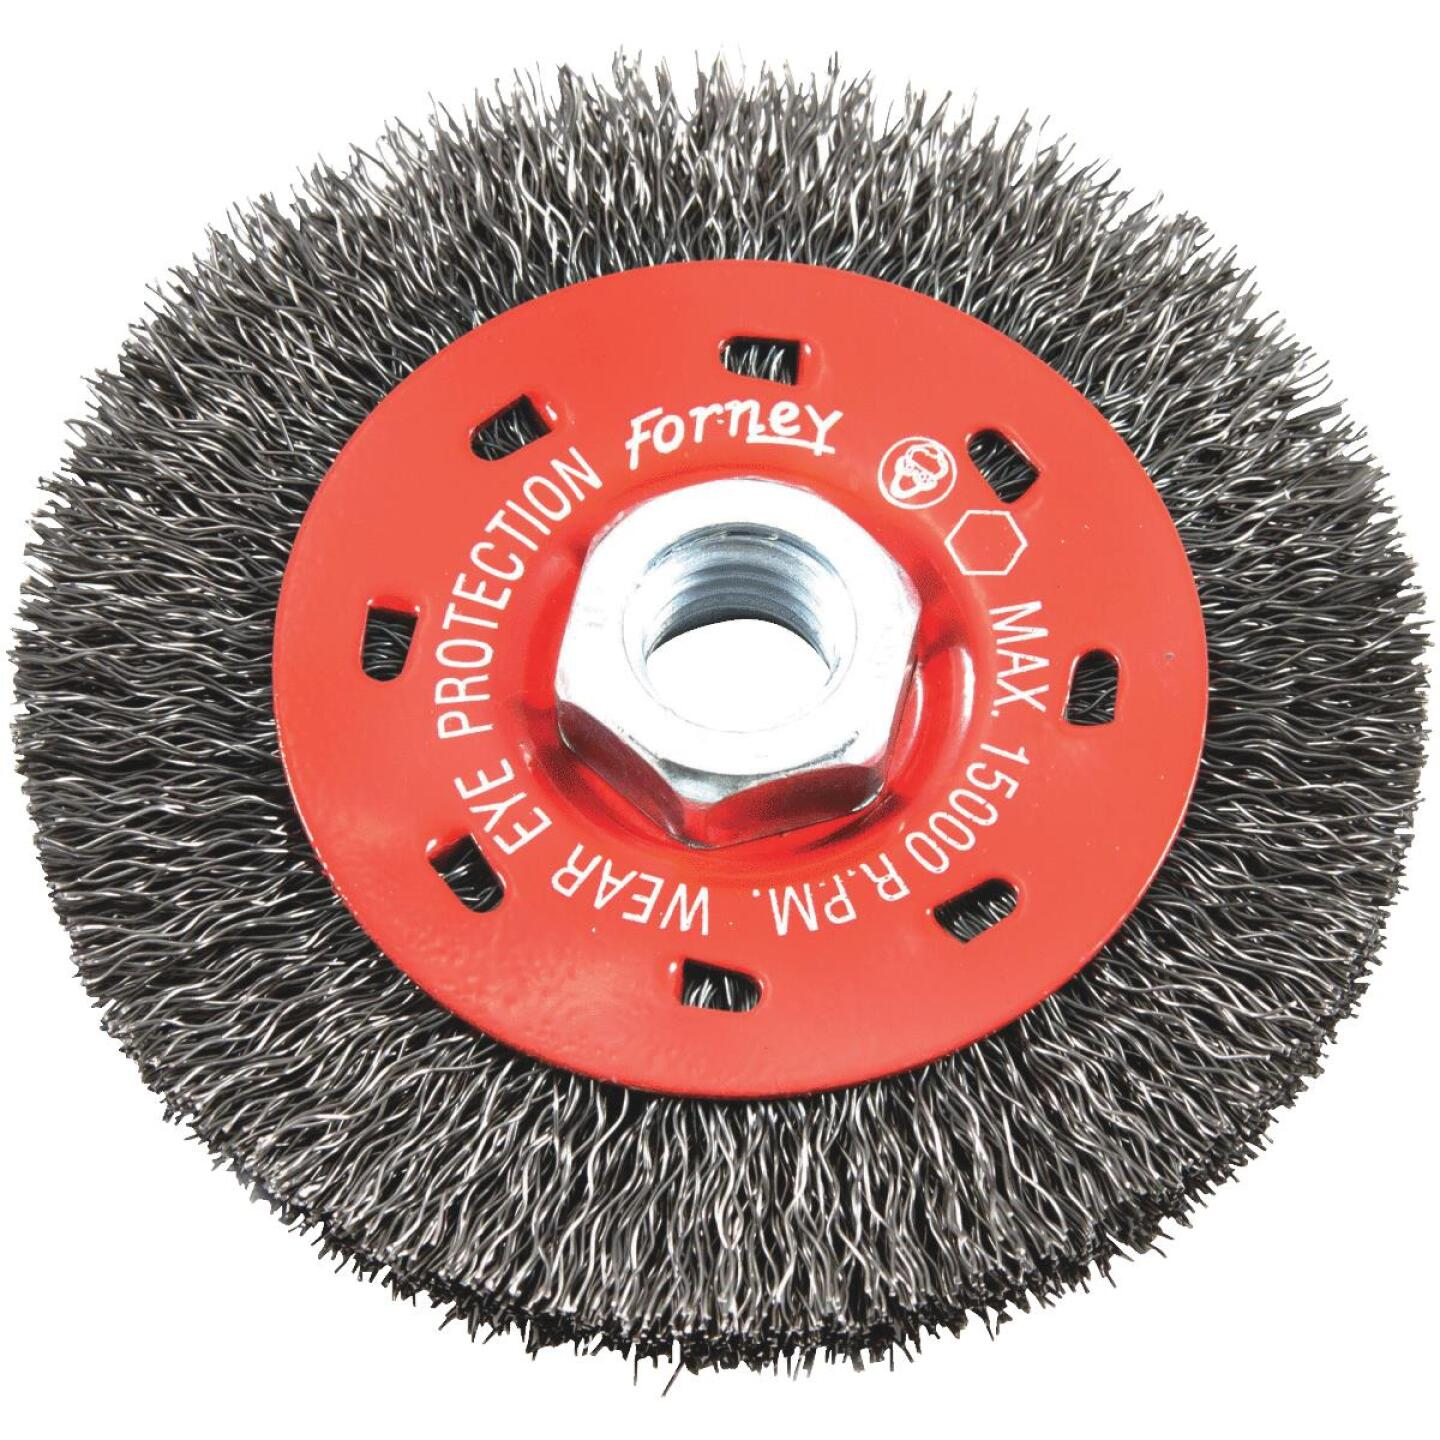 Forney 4 In. Crimped 0.012 In. Angle Grinder Wire Wheel Image 1